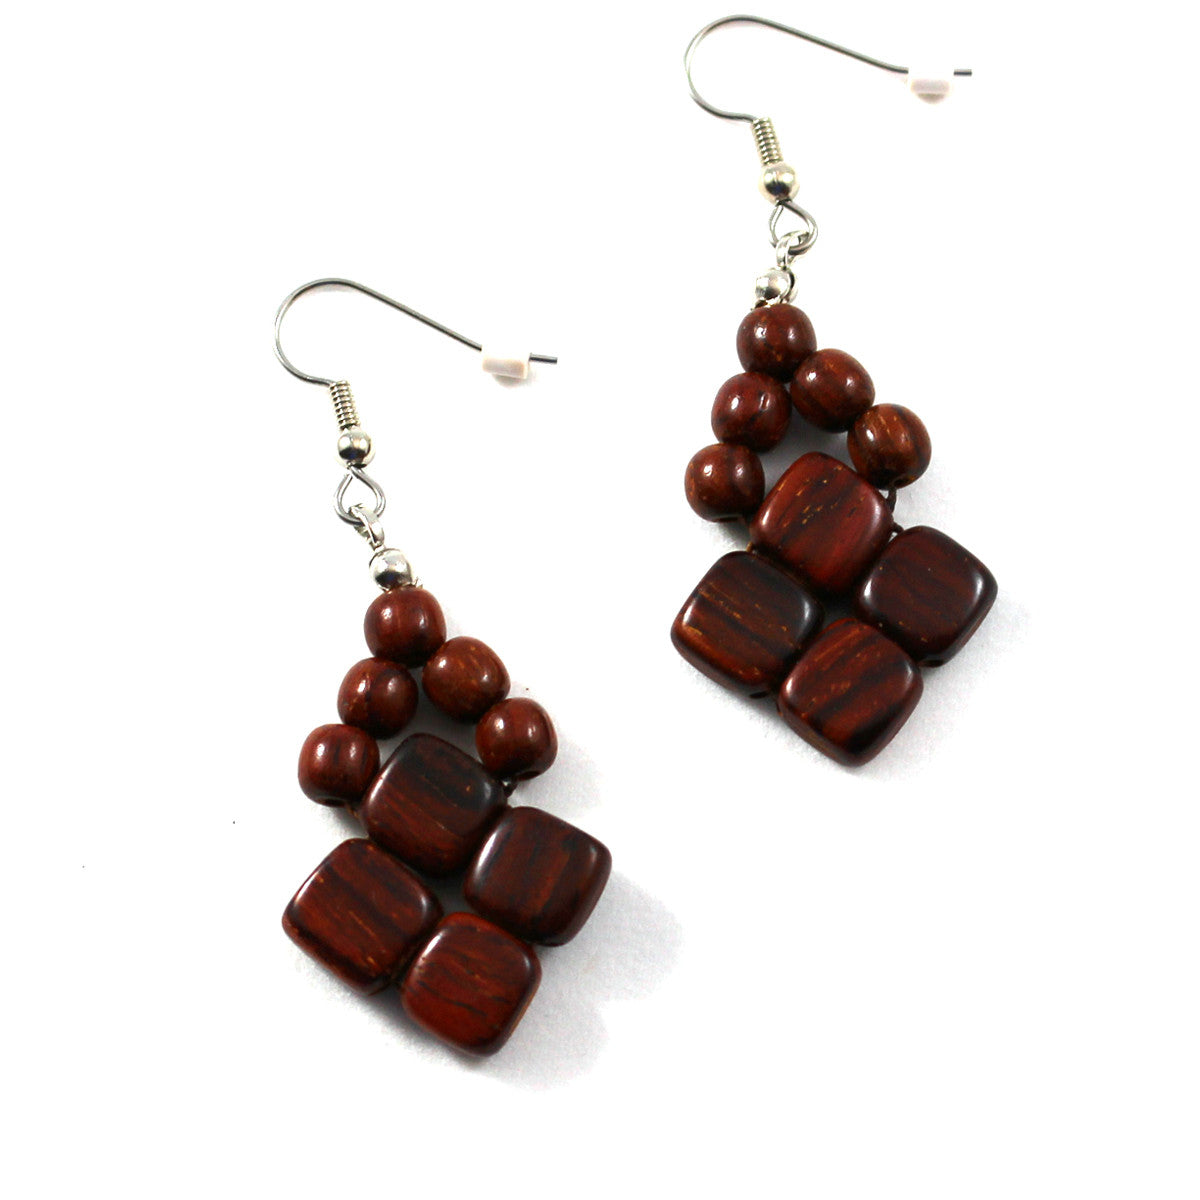 Rosewood Earrings - Diamond